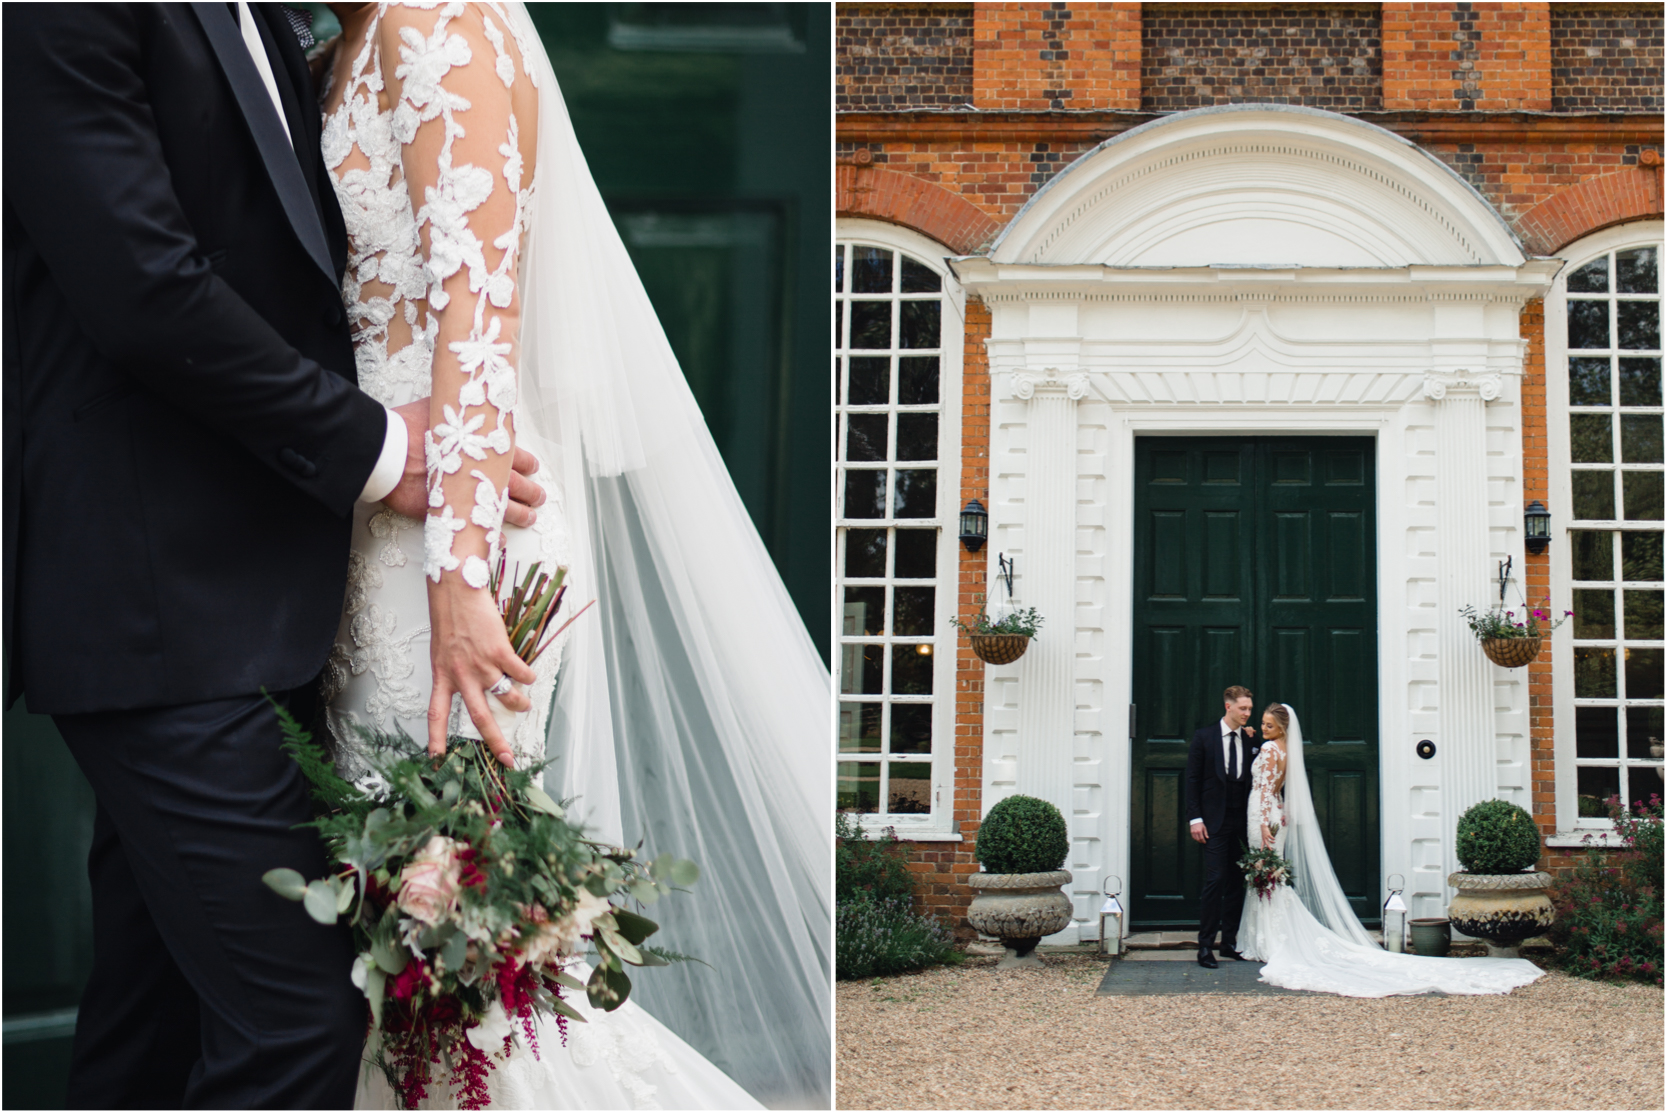 Gosfield Hall Wedding Photography Surrey Luxury Photographer 71.jpg